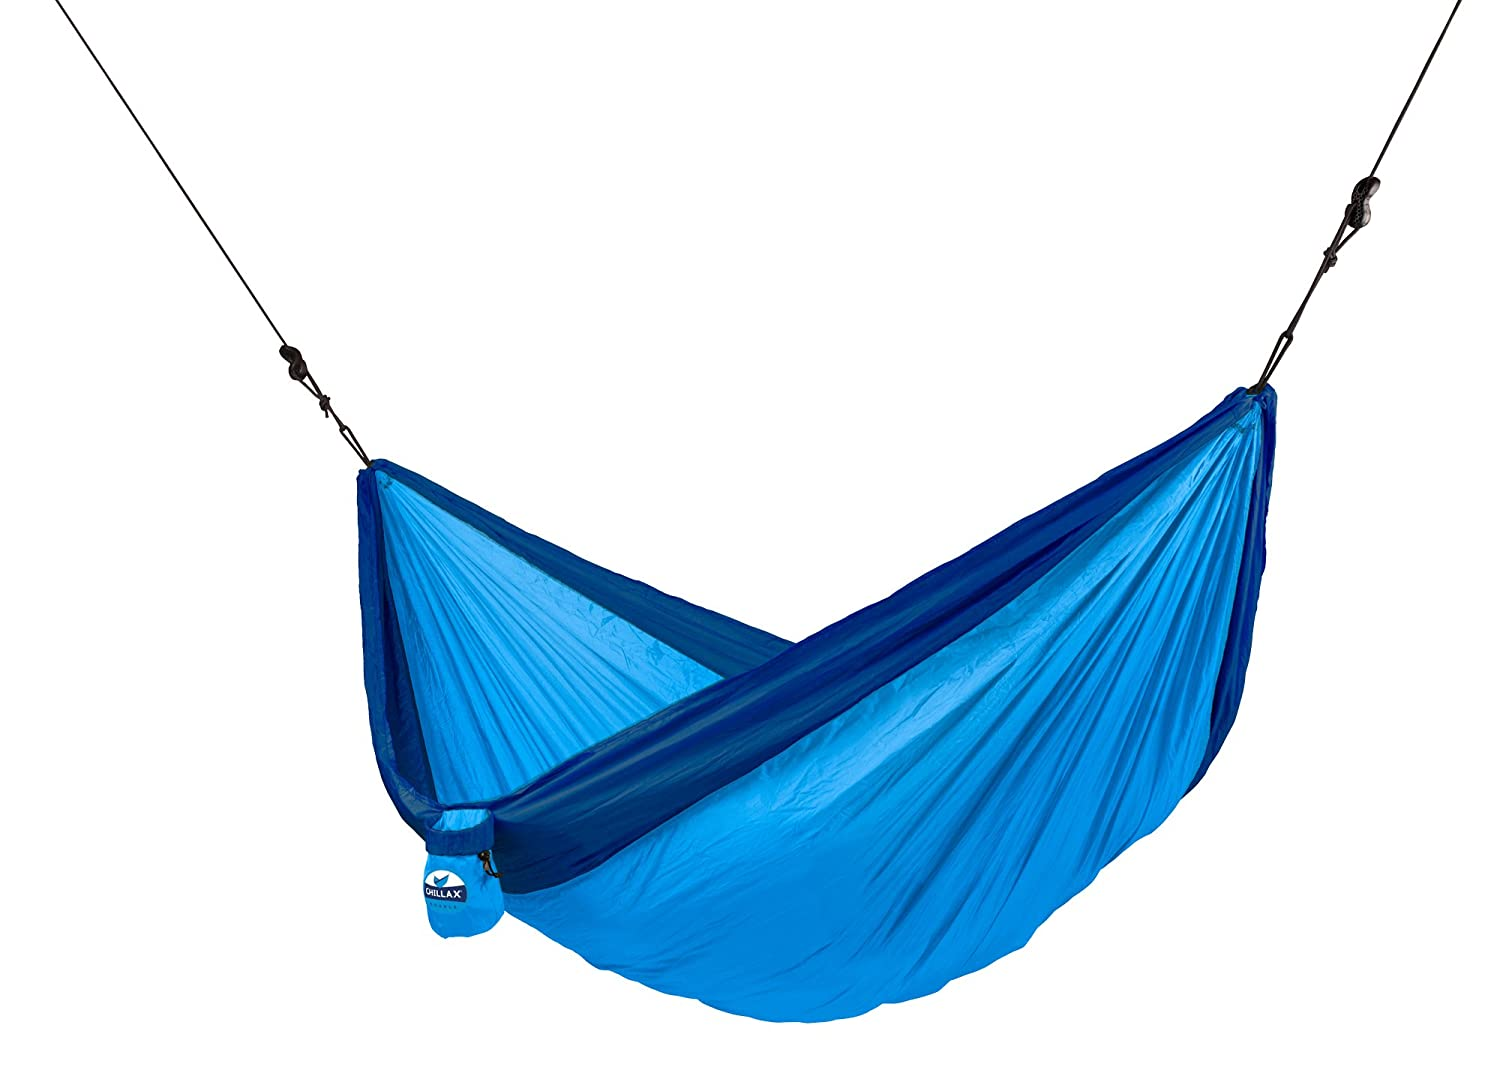 chillax   blue   double travel hammock with integrated suspension  amazon ca  sports  u0026 outdoors chillax   blue   double travel hammock with integrated suspension      rh   amazon ca